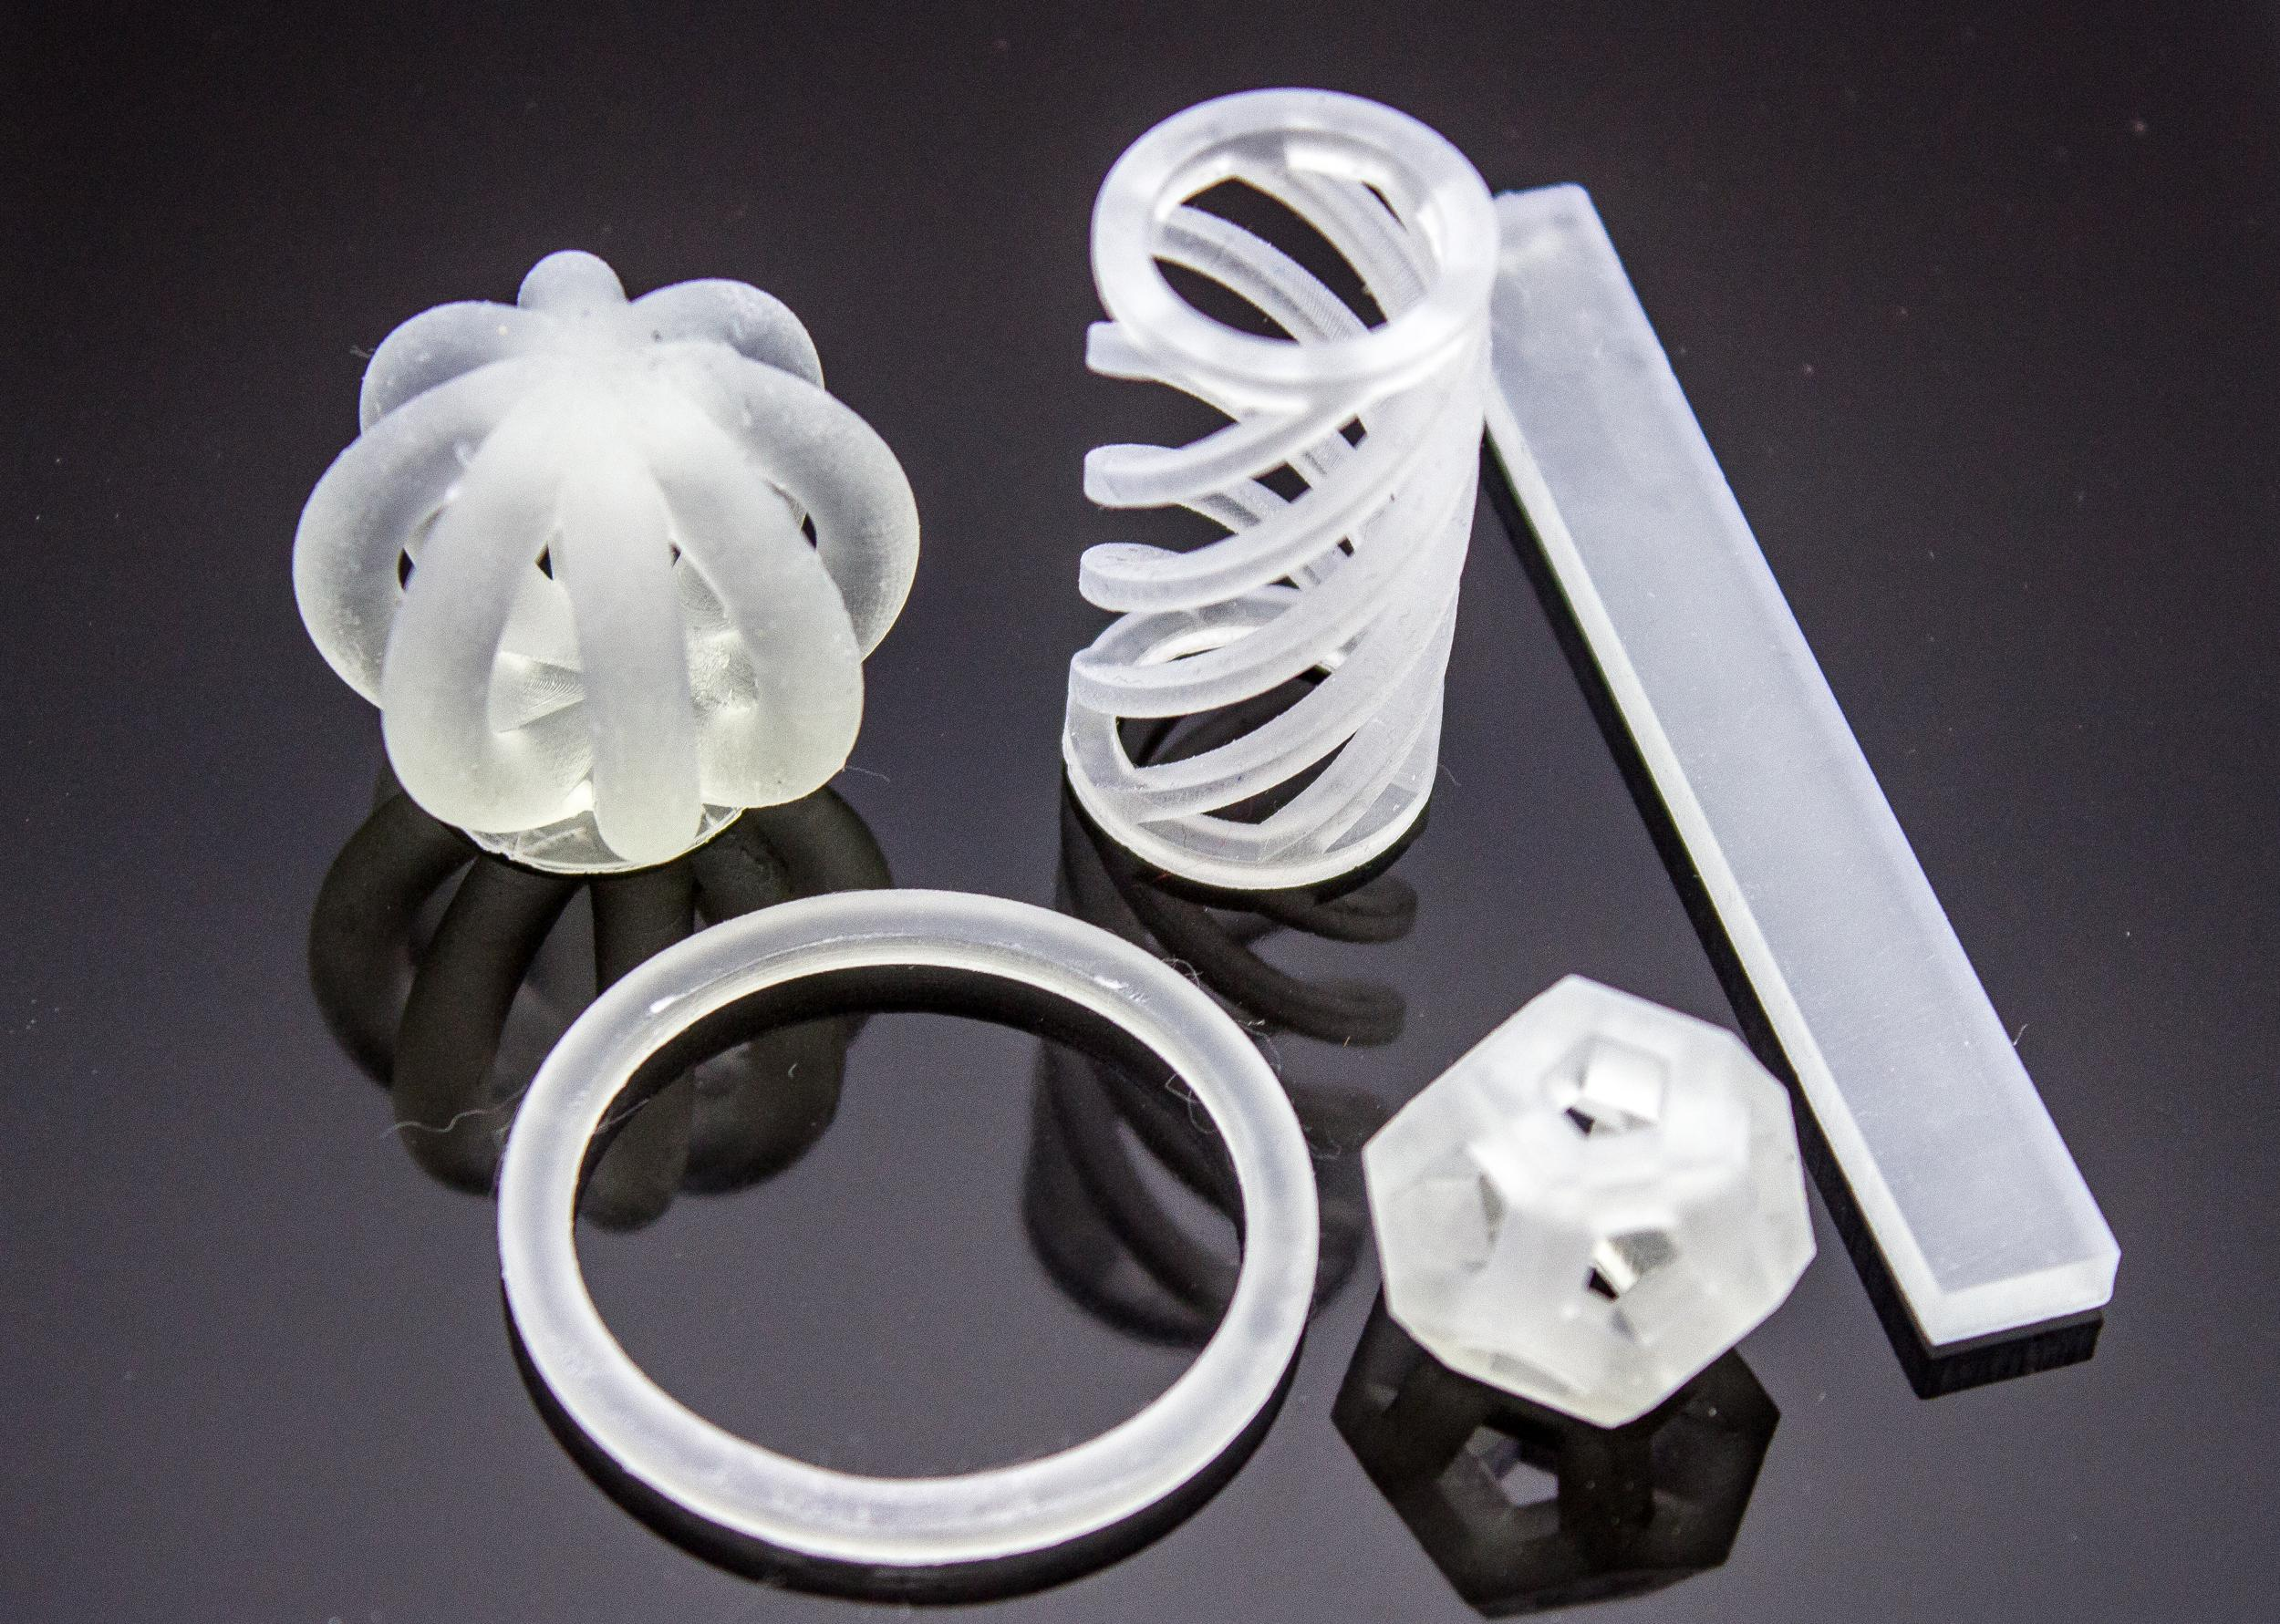 A selection of 3D printed objects using Henkel-developed resin. Photo via Henkel